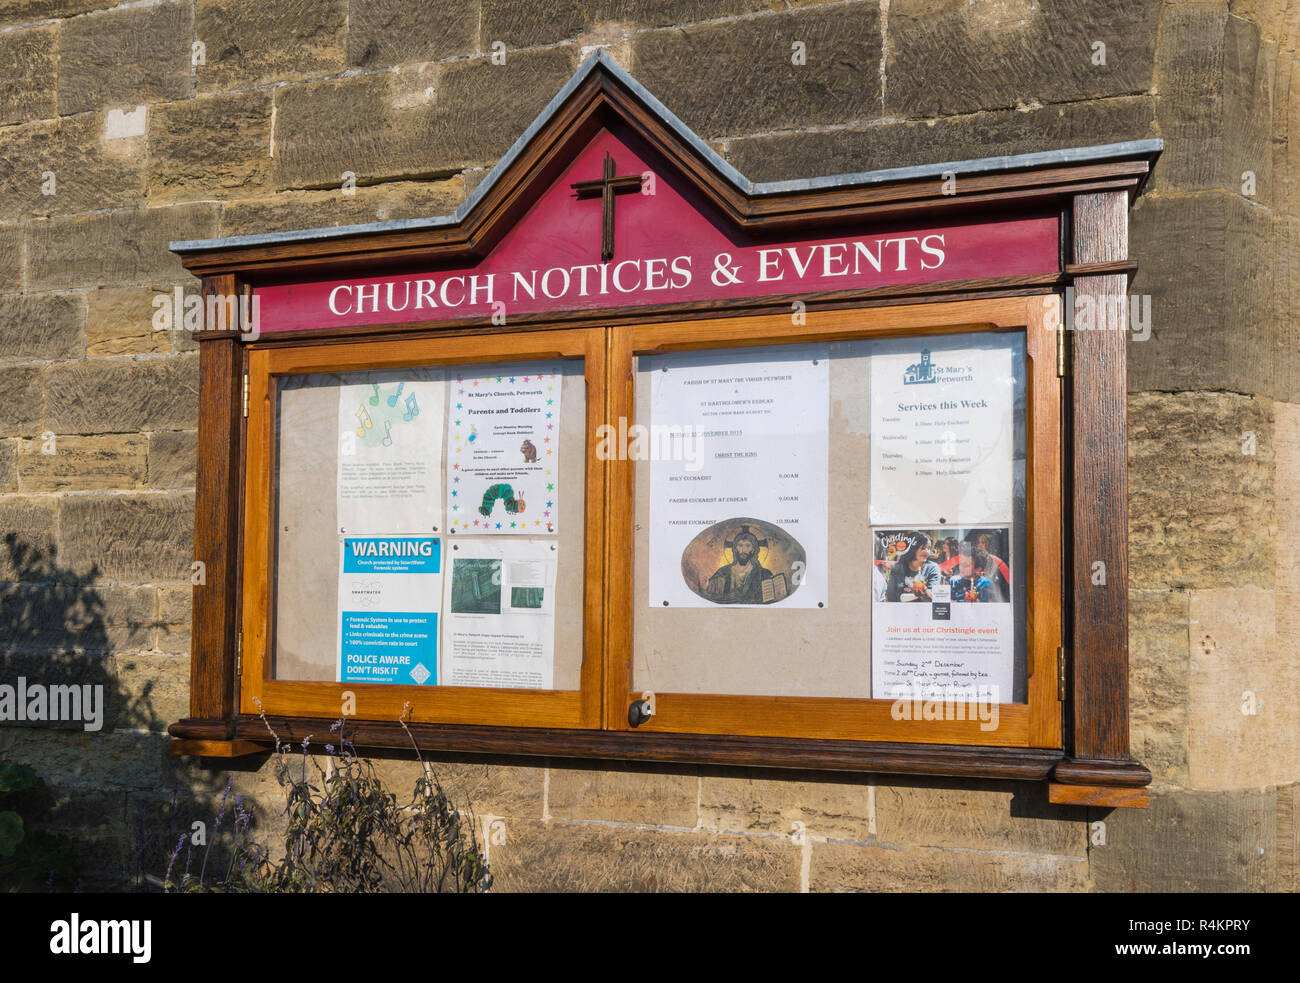 Church notice and events noticeboard at a church in England, UK. - Stock Image